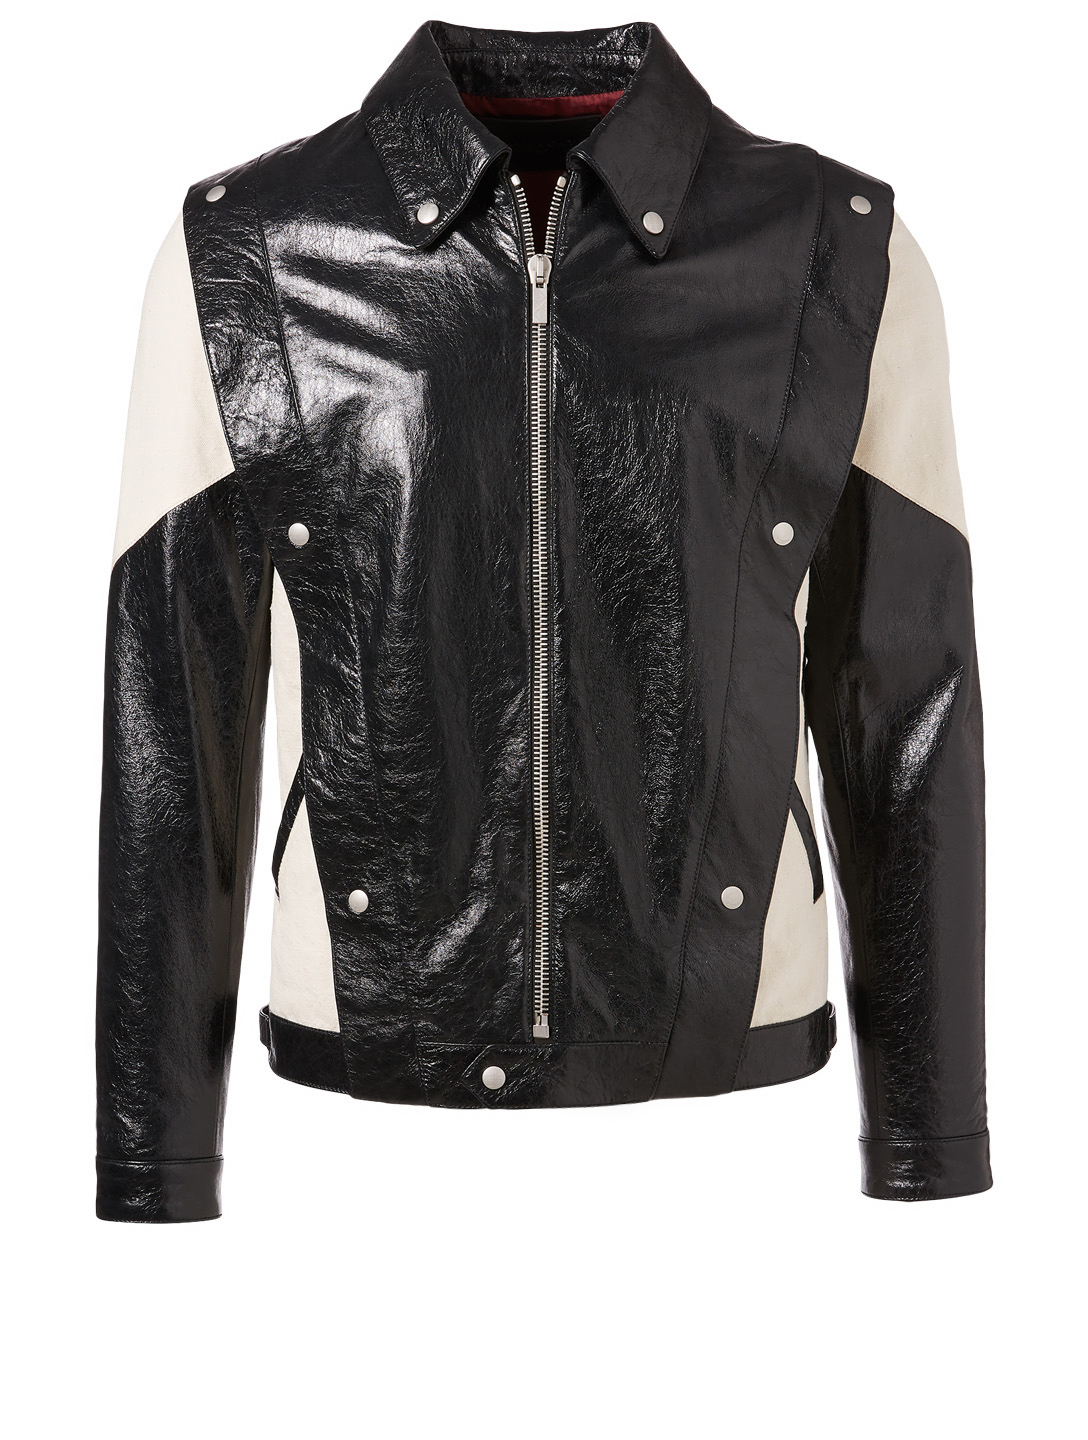 GIVENCHY Two-Tone Leather Jacket Men's Black